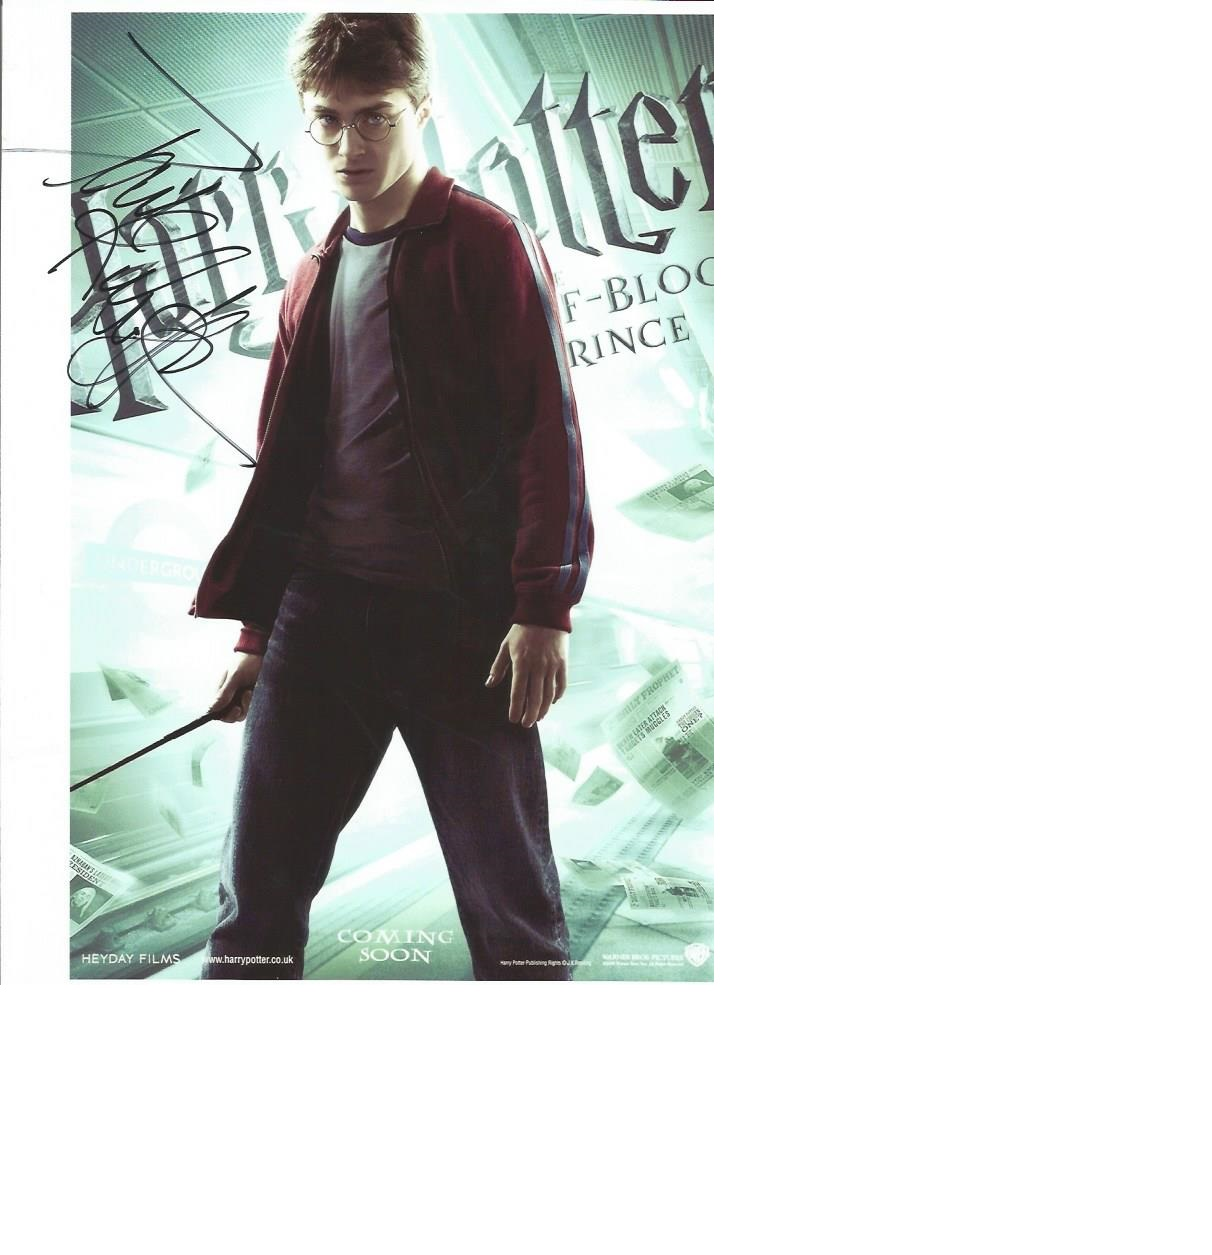 Lot 29 - Daniel Ratcliffe as Harry Potter signed 12 x 8 colour wizard photo, scarce and highly collectable.